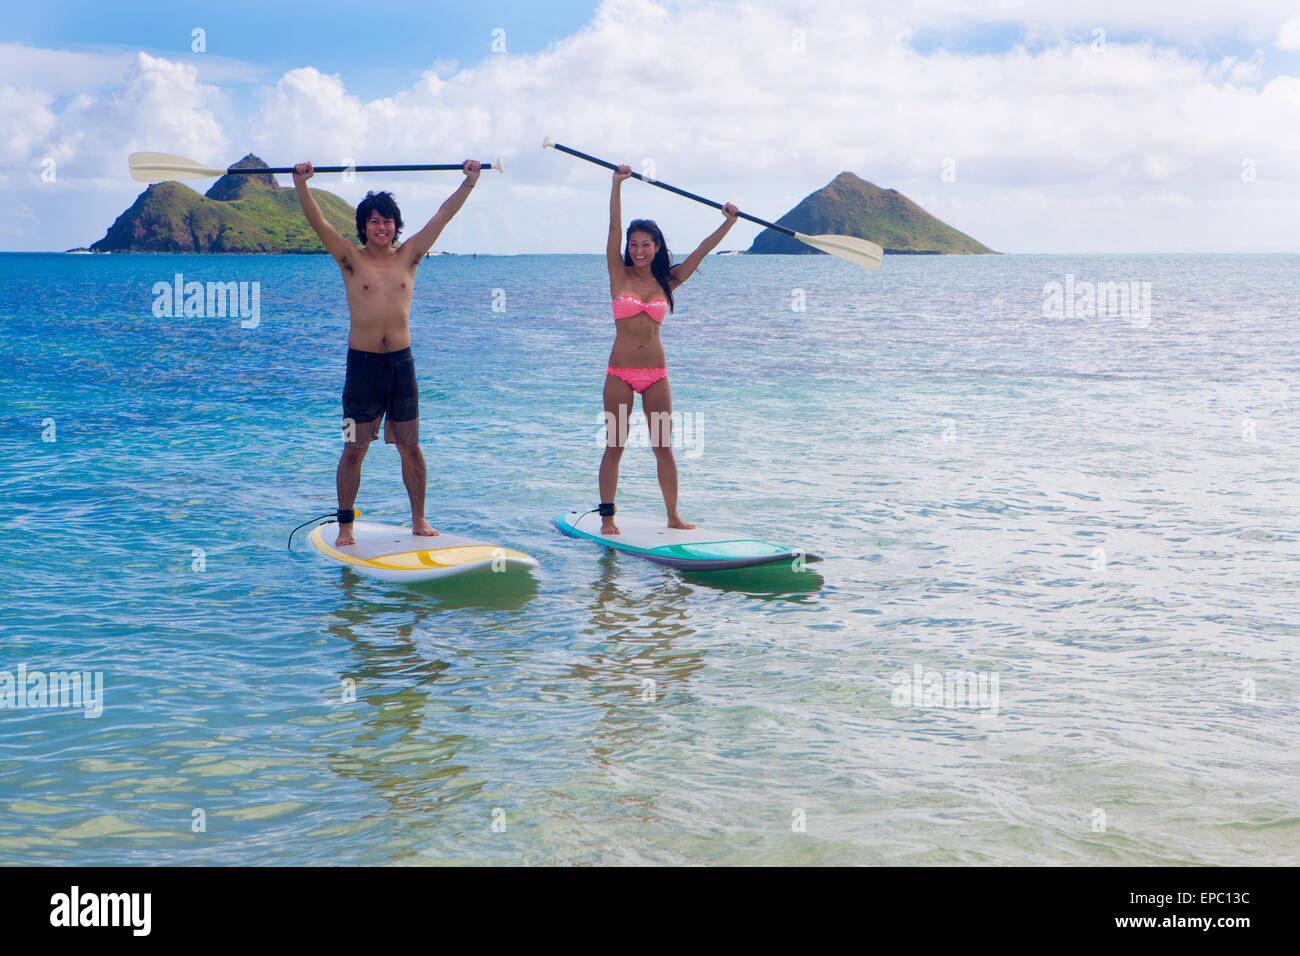 japanisches Paar auf Stand up Paddleboards in hawaii Stockfoto